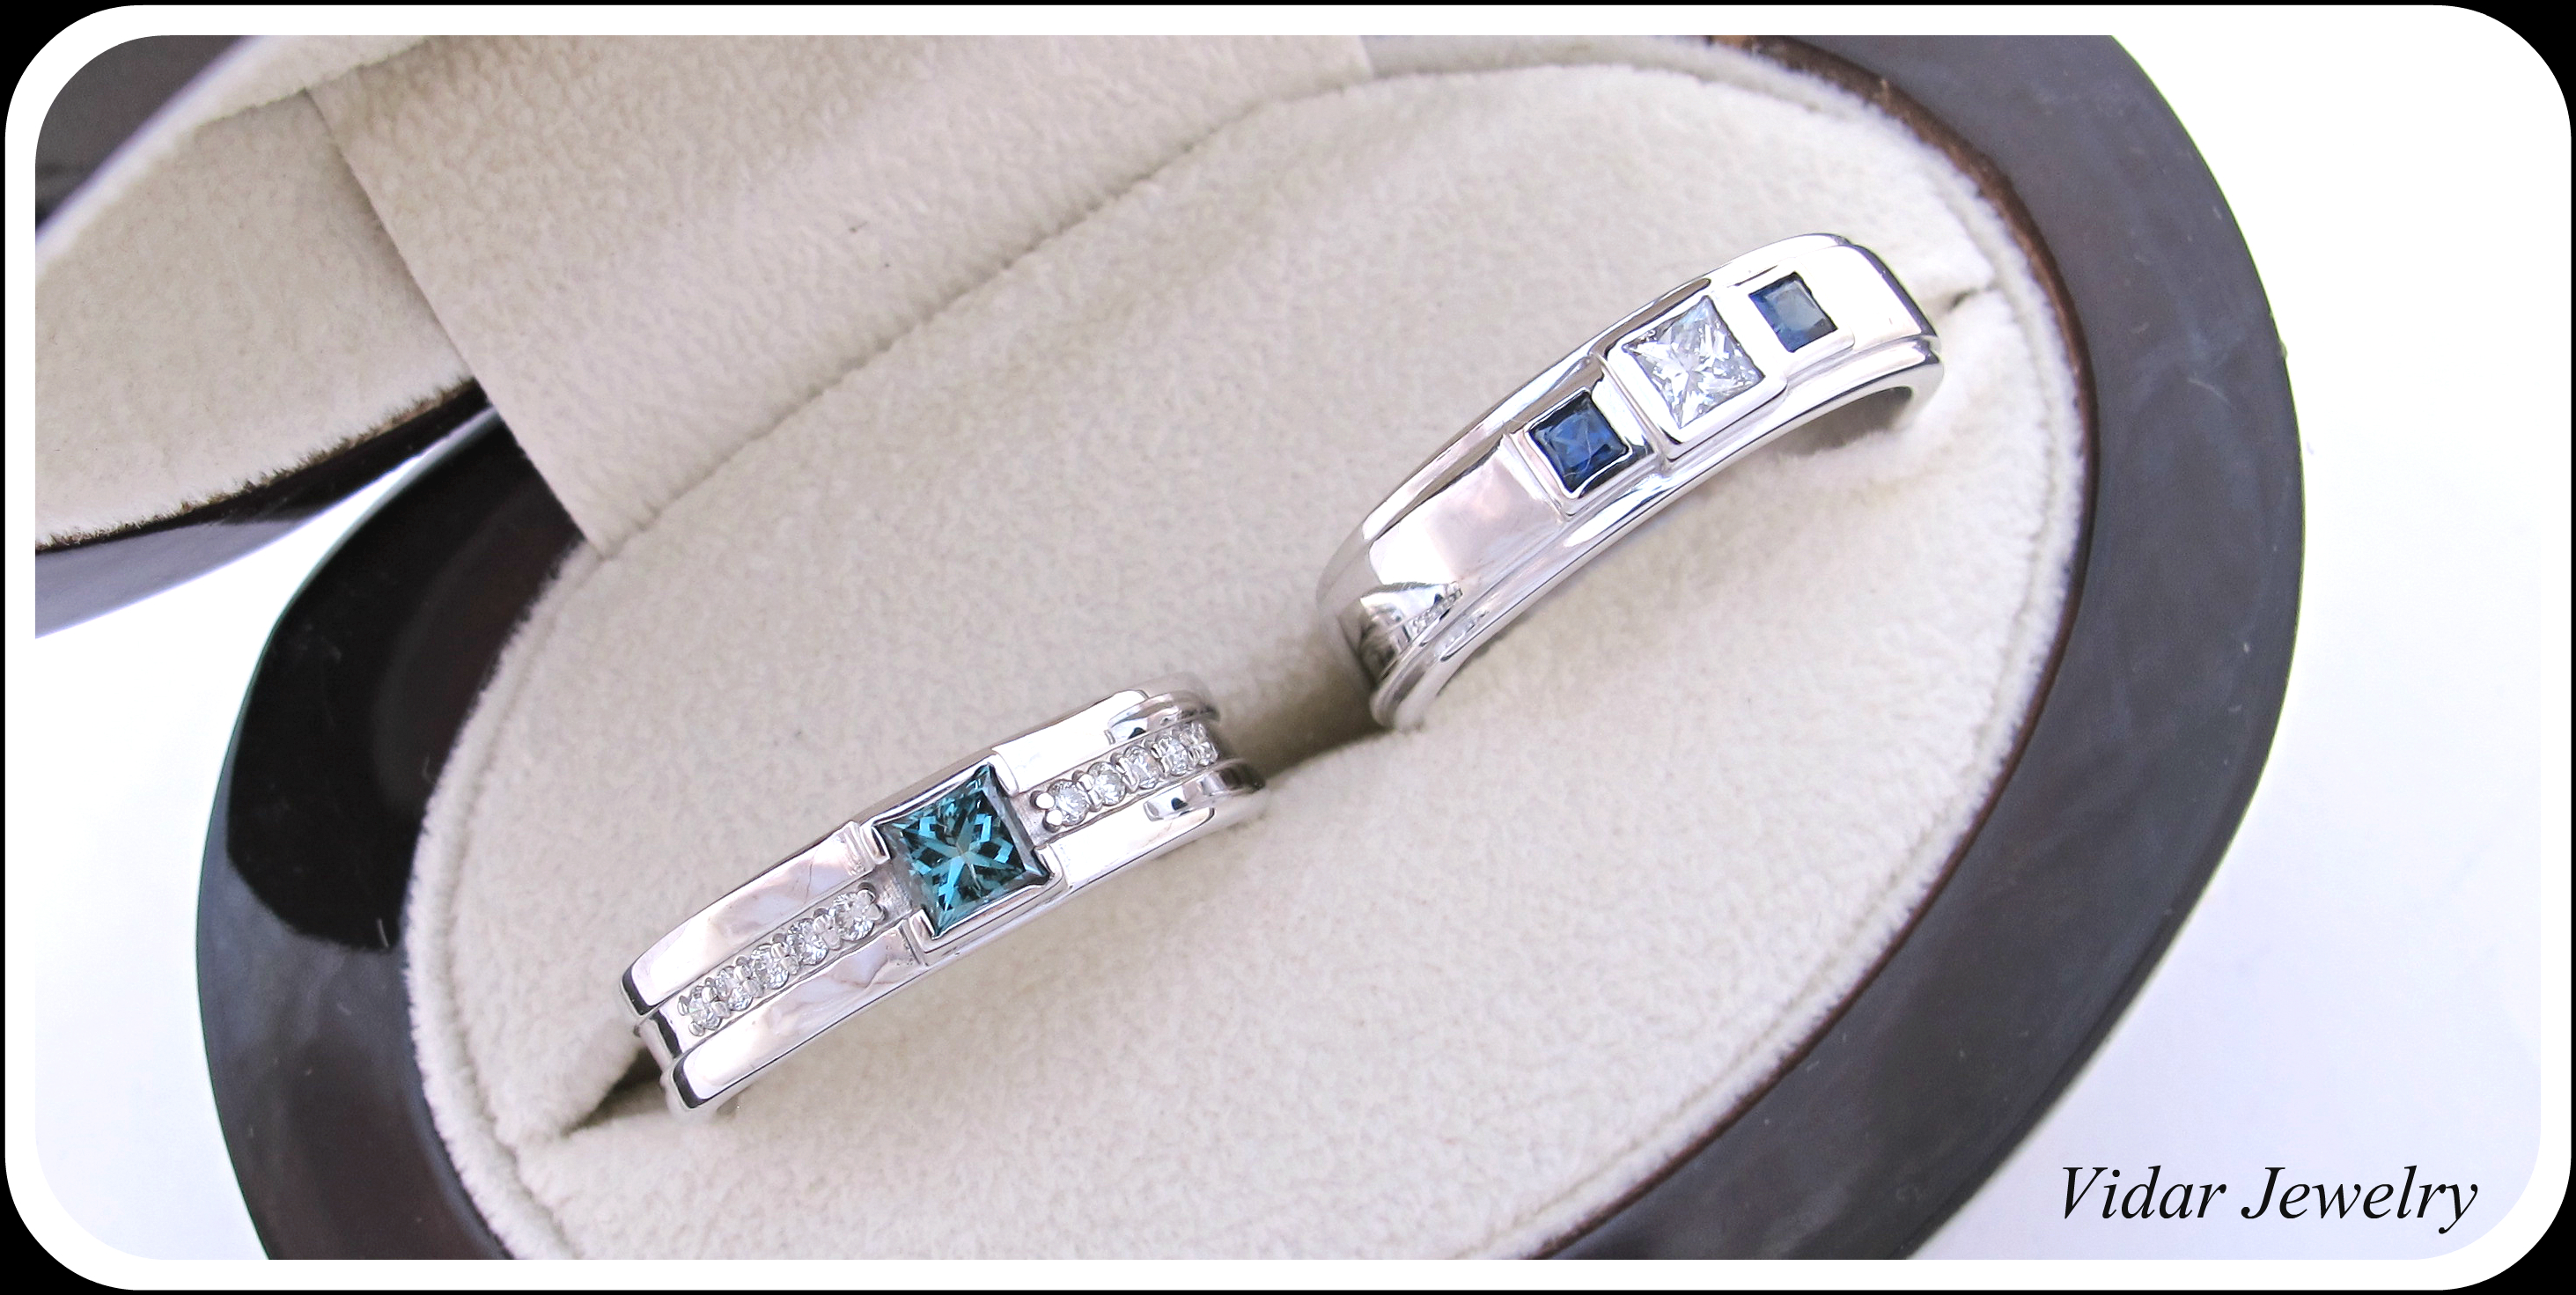 vidarjewelry sapphire wedding bands His And Her Matching Blue Diamond Blue Sapphire Wedding Band Set